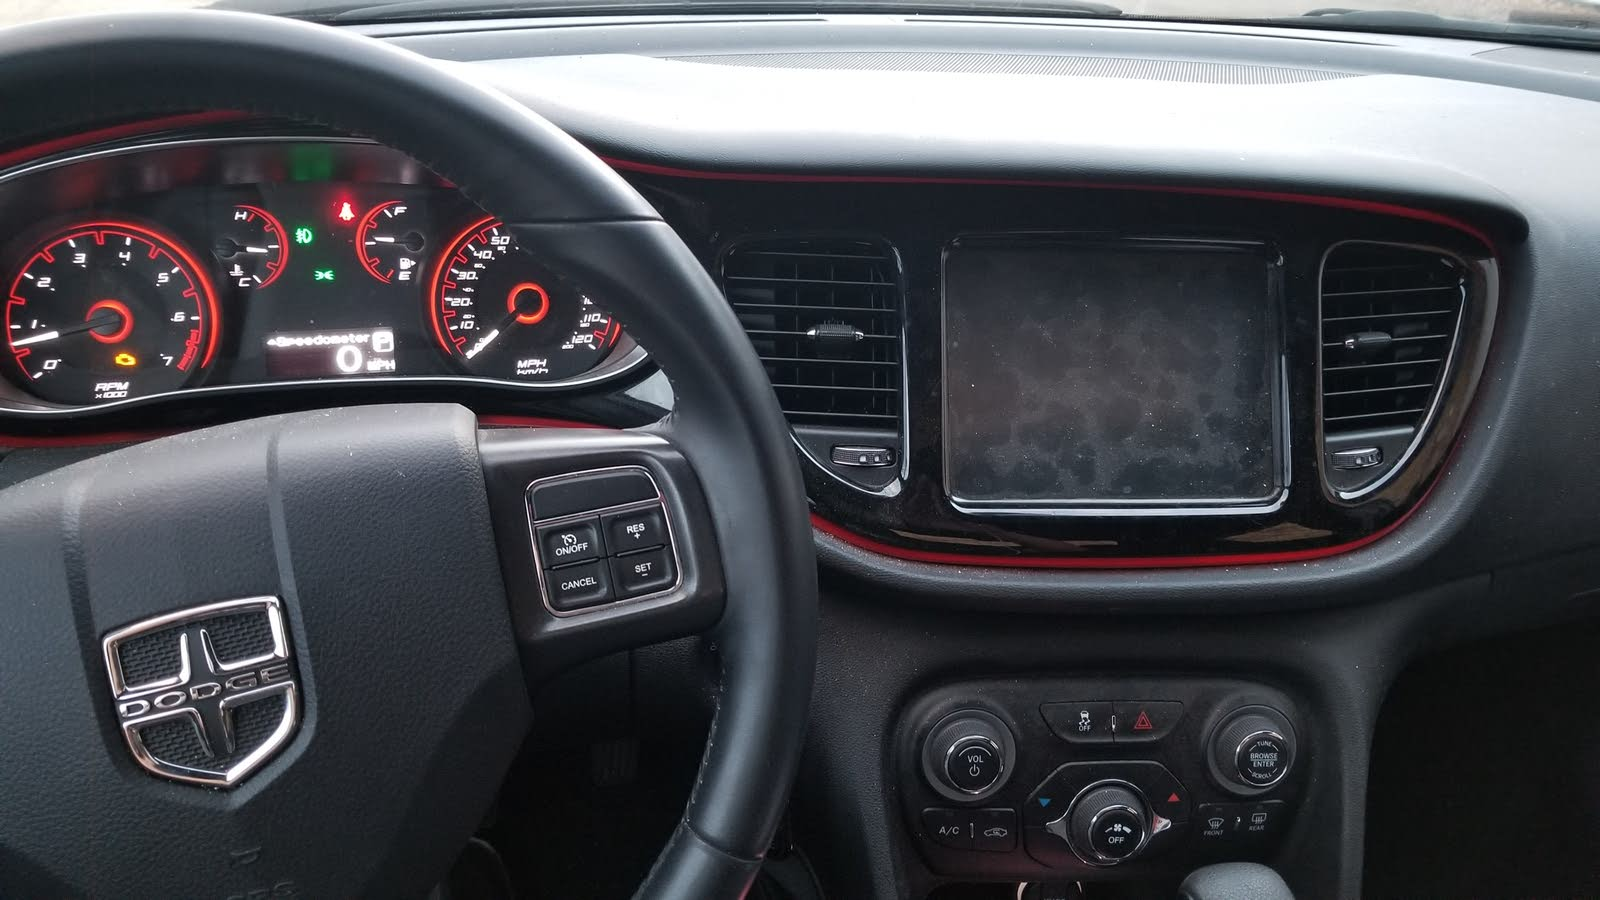 Dodge Dart Questions - Radio display is black and not